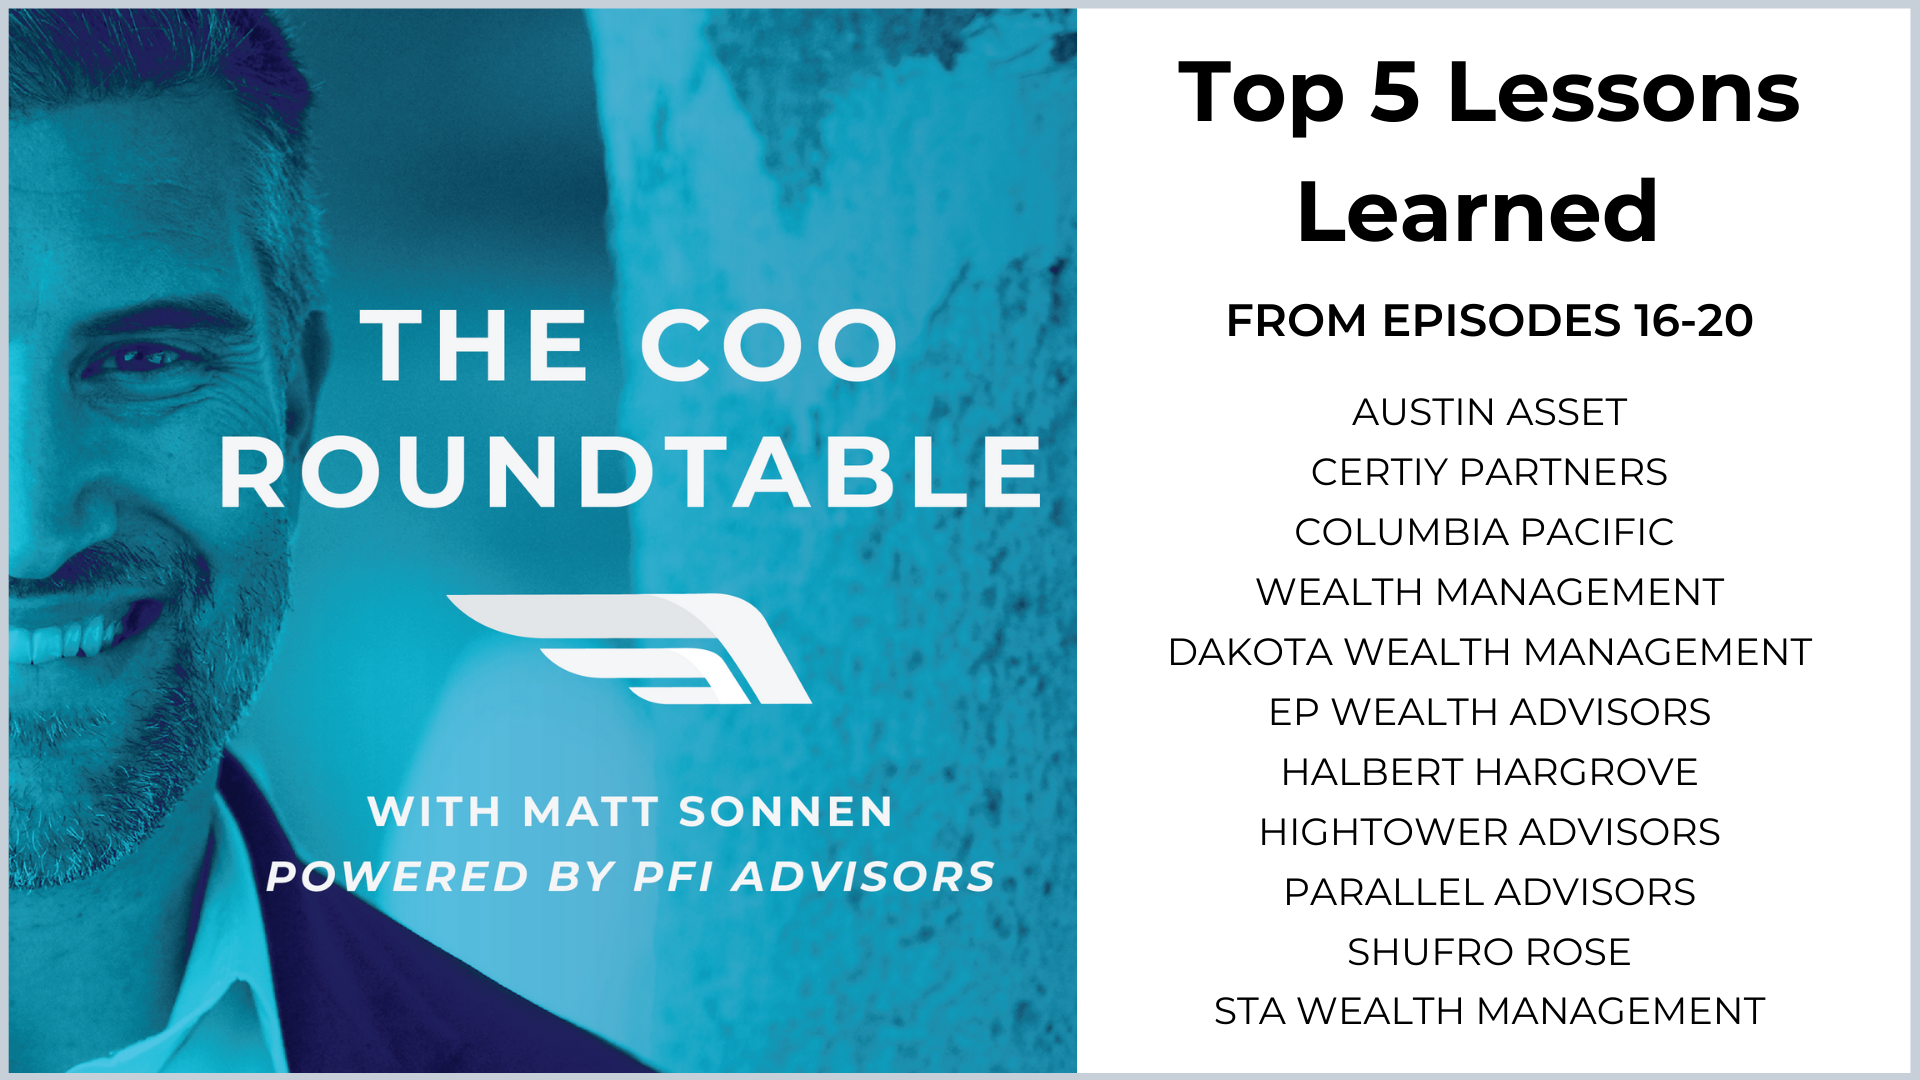 Top 5 Lessons Learned from Episodes  16-20 of The COO Roundtable